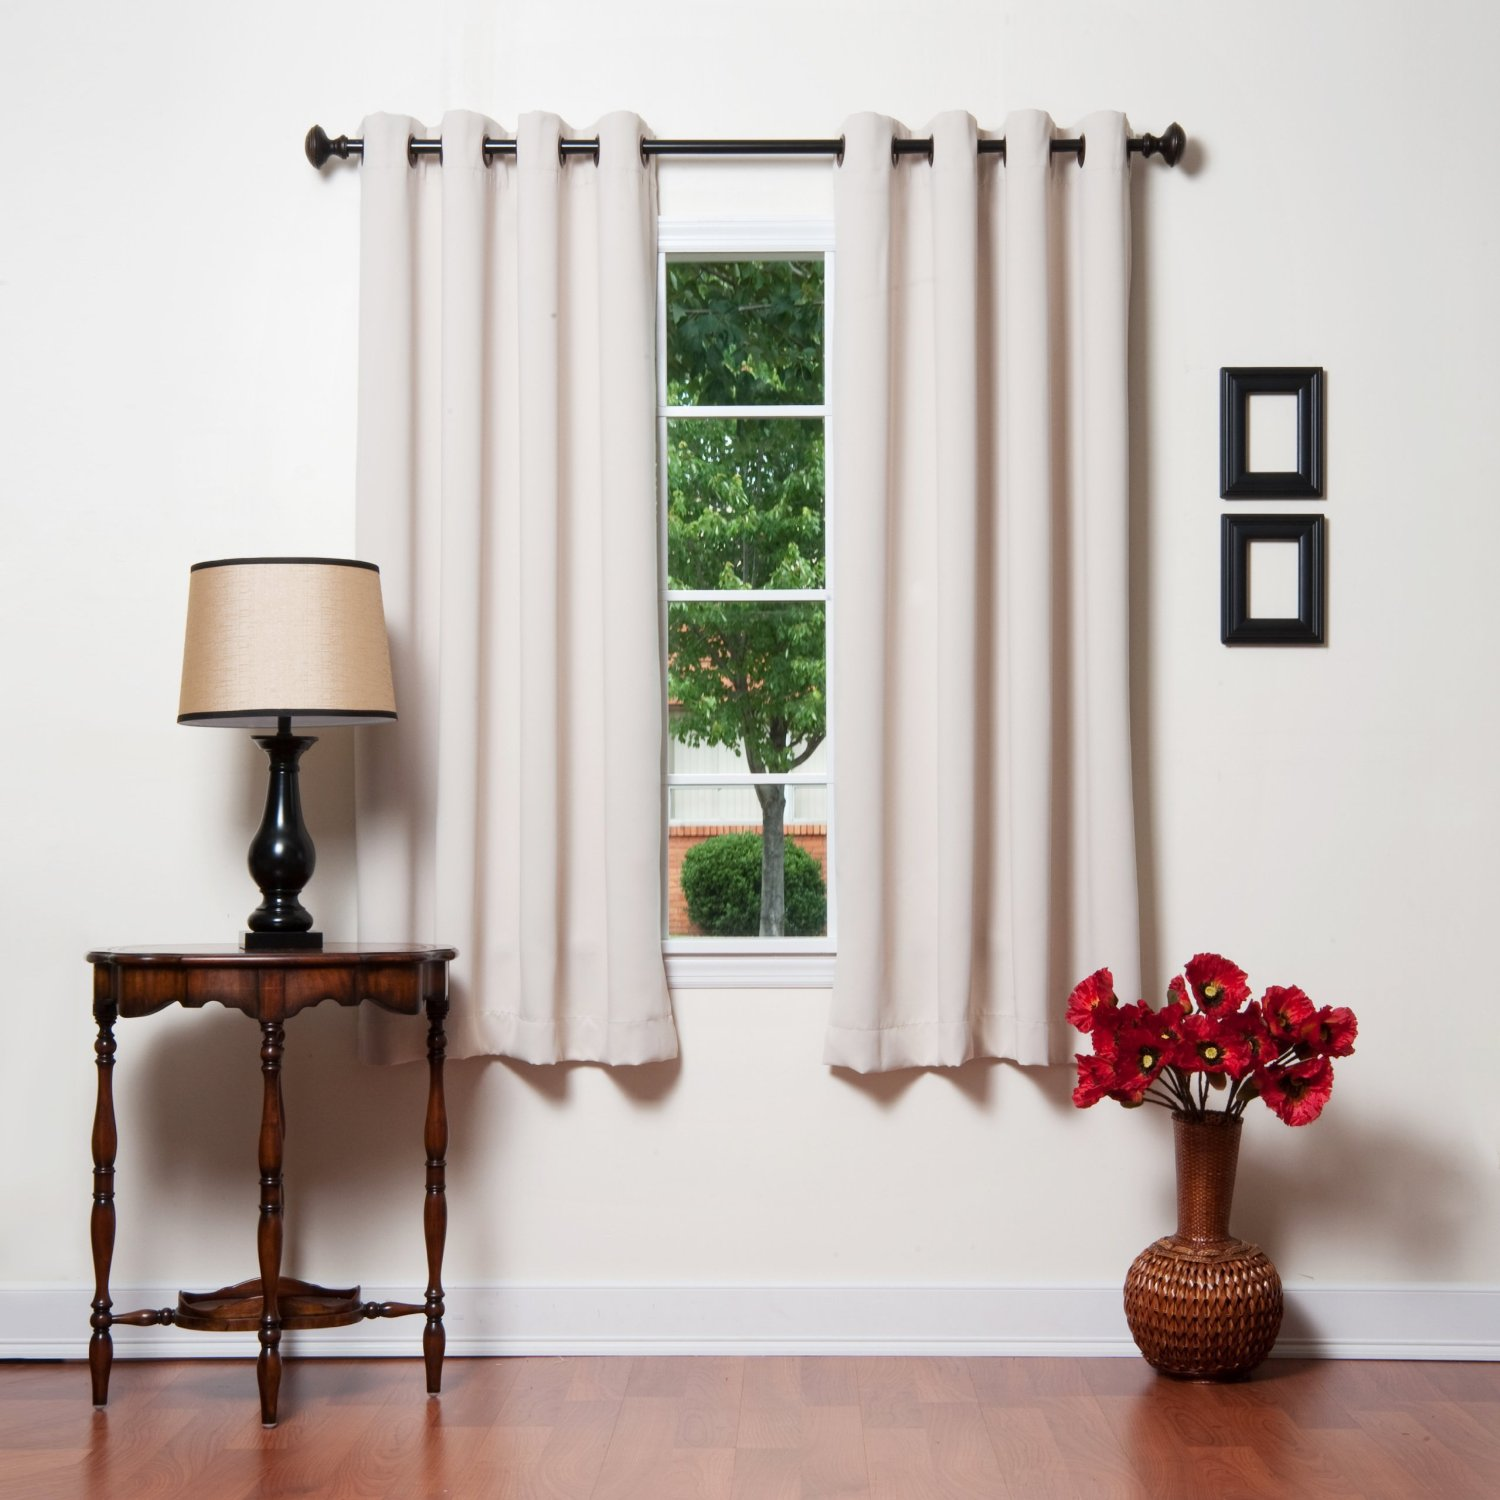 Cheap Blackout Curtains for Inspiring Home Decorating Ideas: Cheap Blackout Curtains | Blackout Drape | Black Out Window Panels